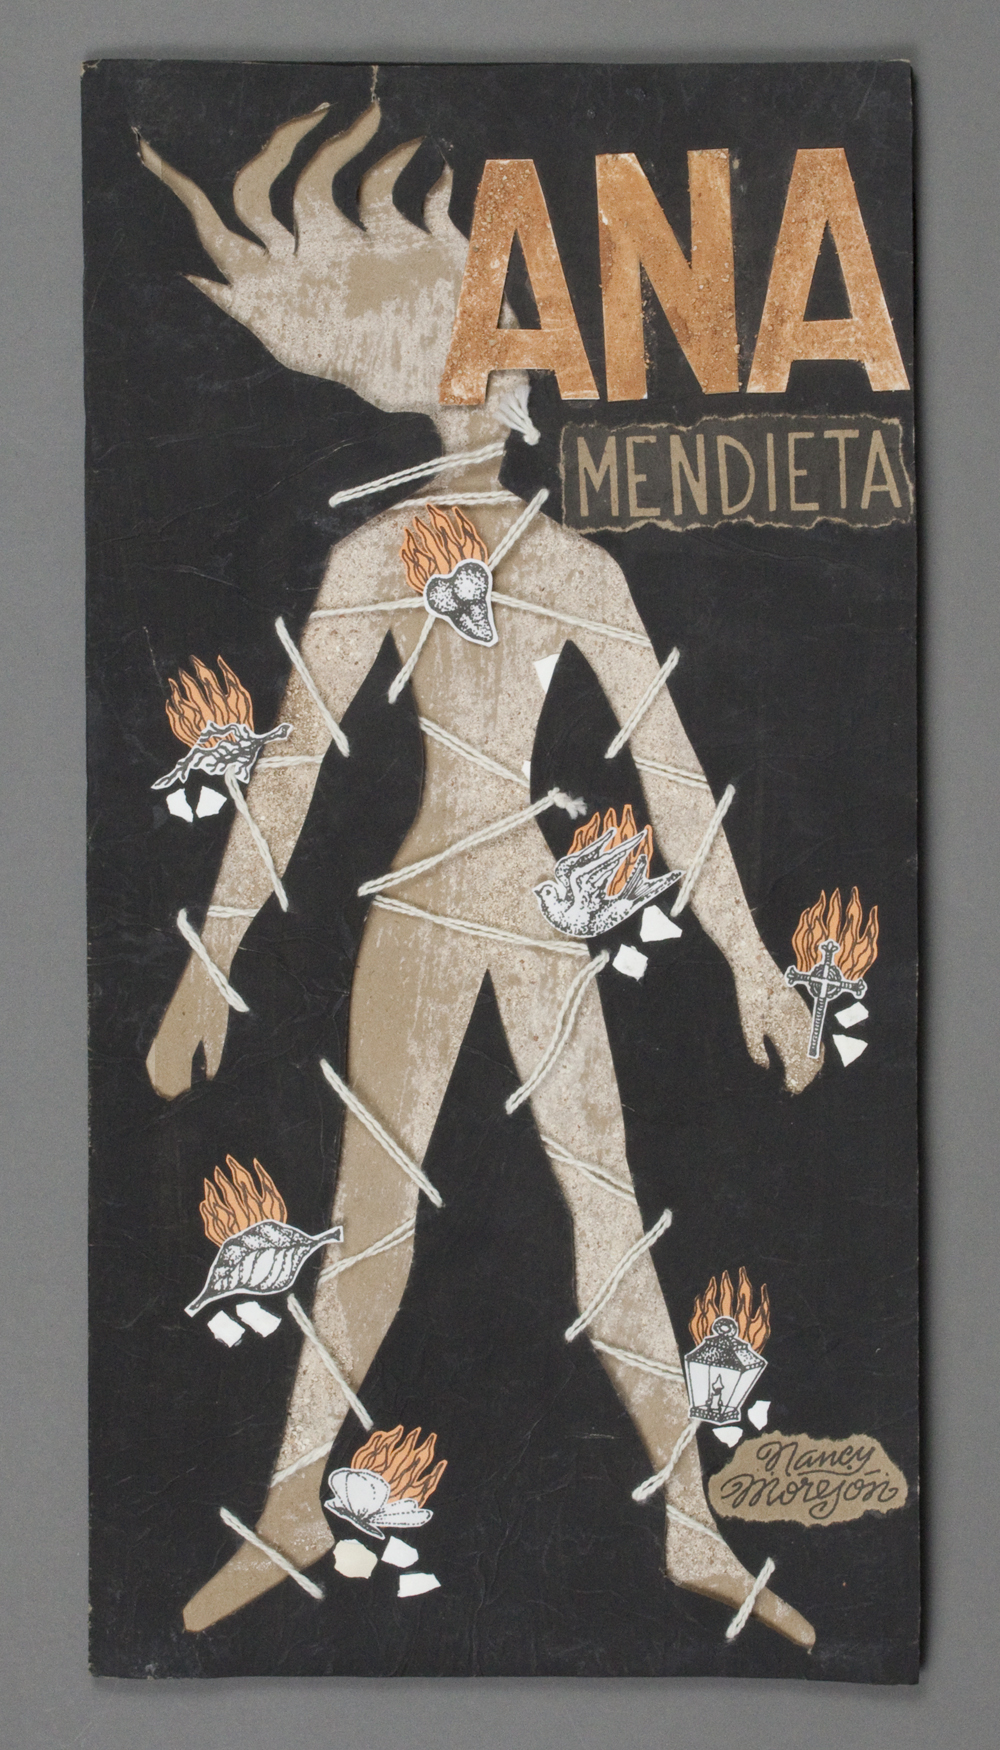 book cover with cut out of woman's body with fire